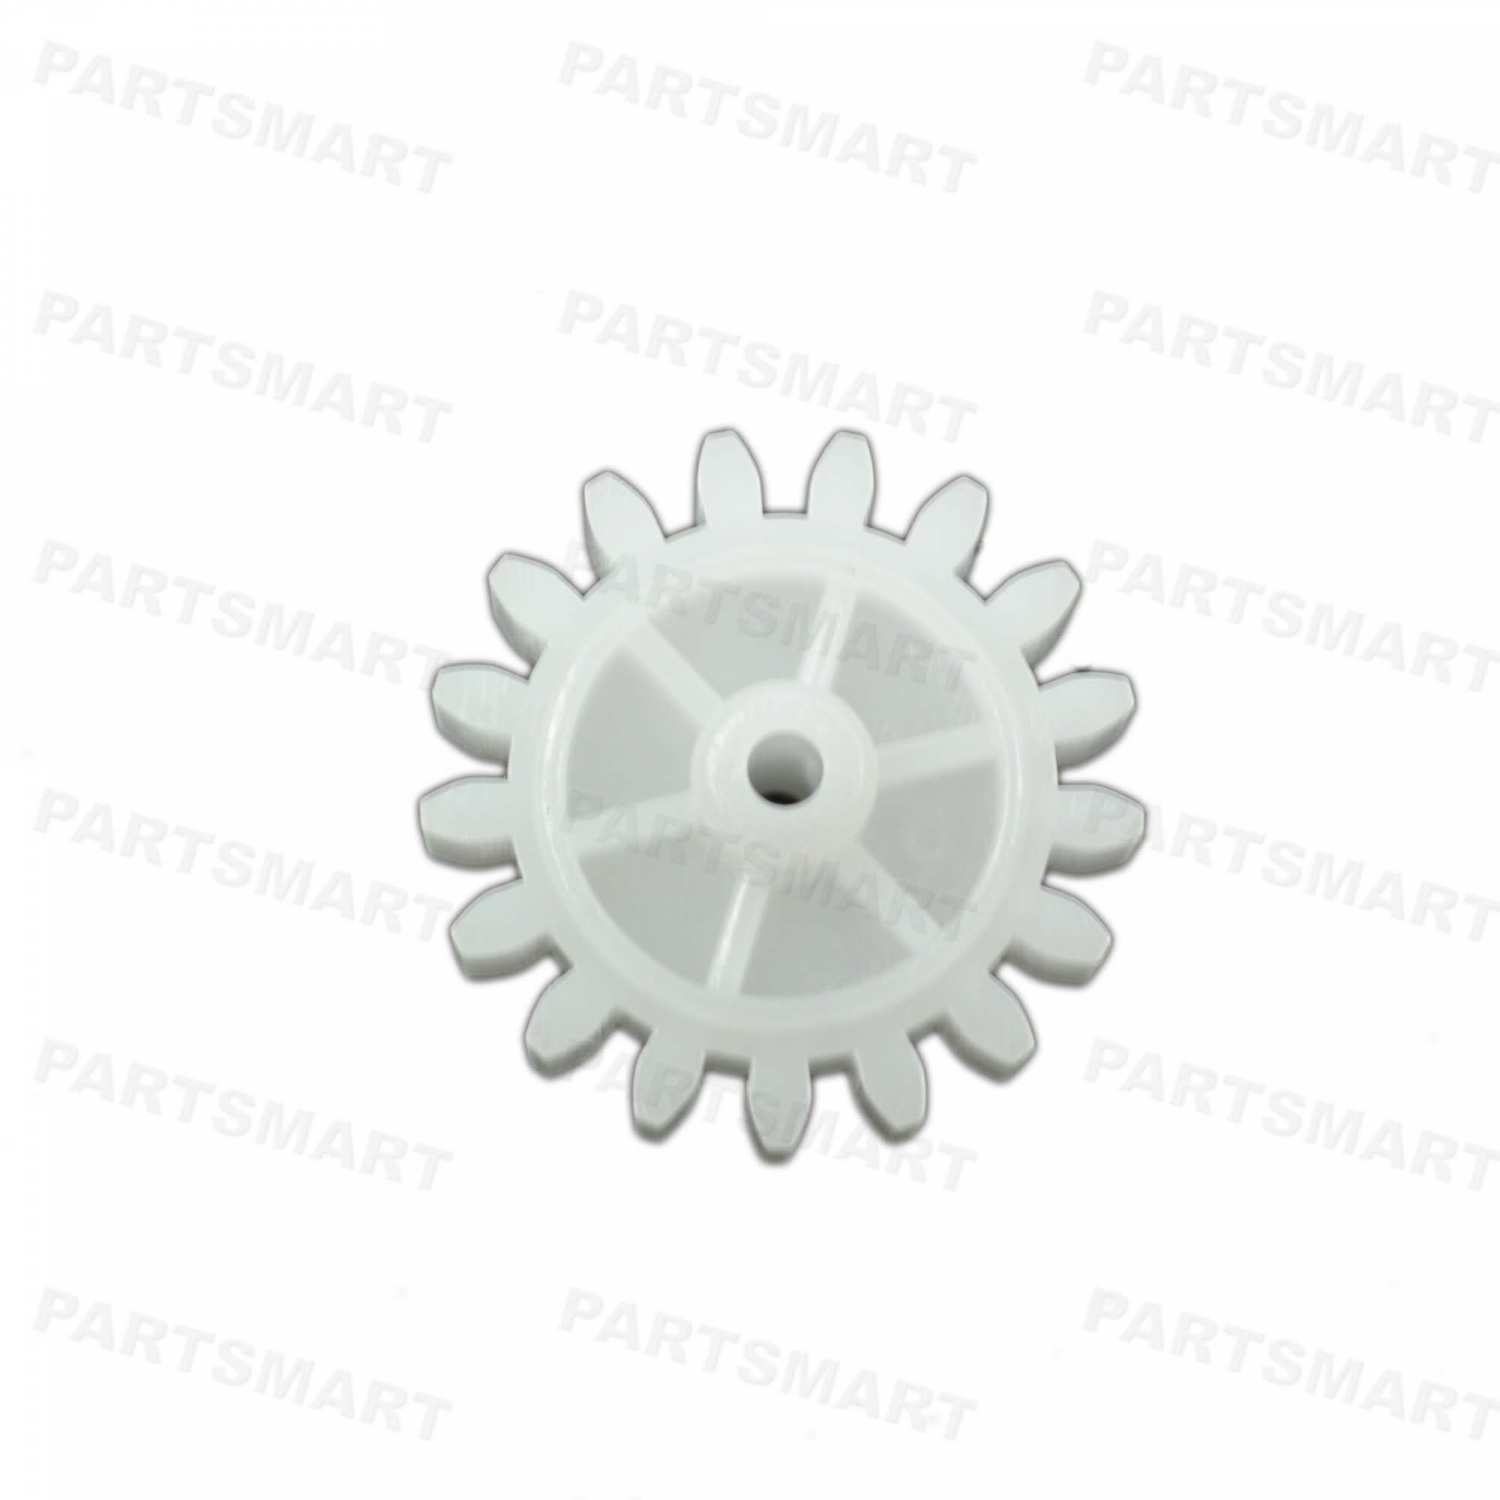 RA0-1005-GR Gear (17T) Only, Arm Swing for HP LaserJet 1000, LaserJet 1200